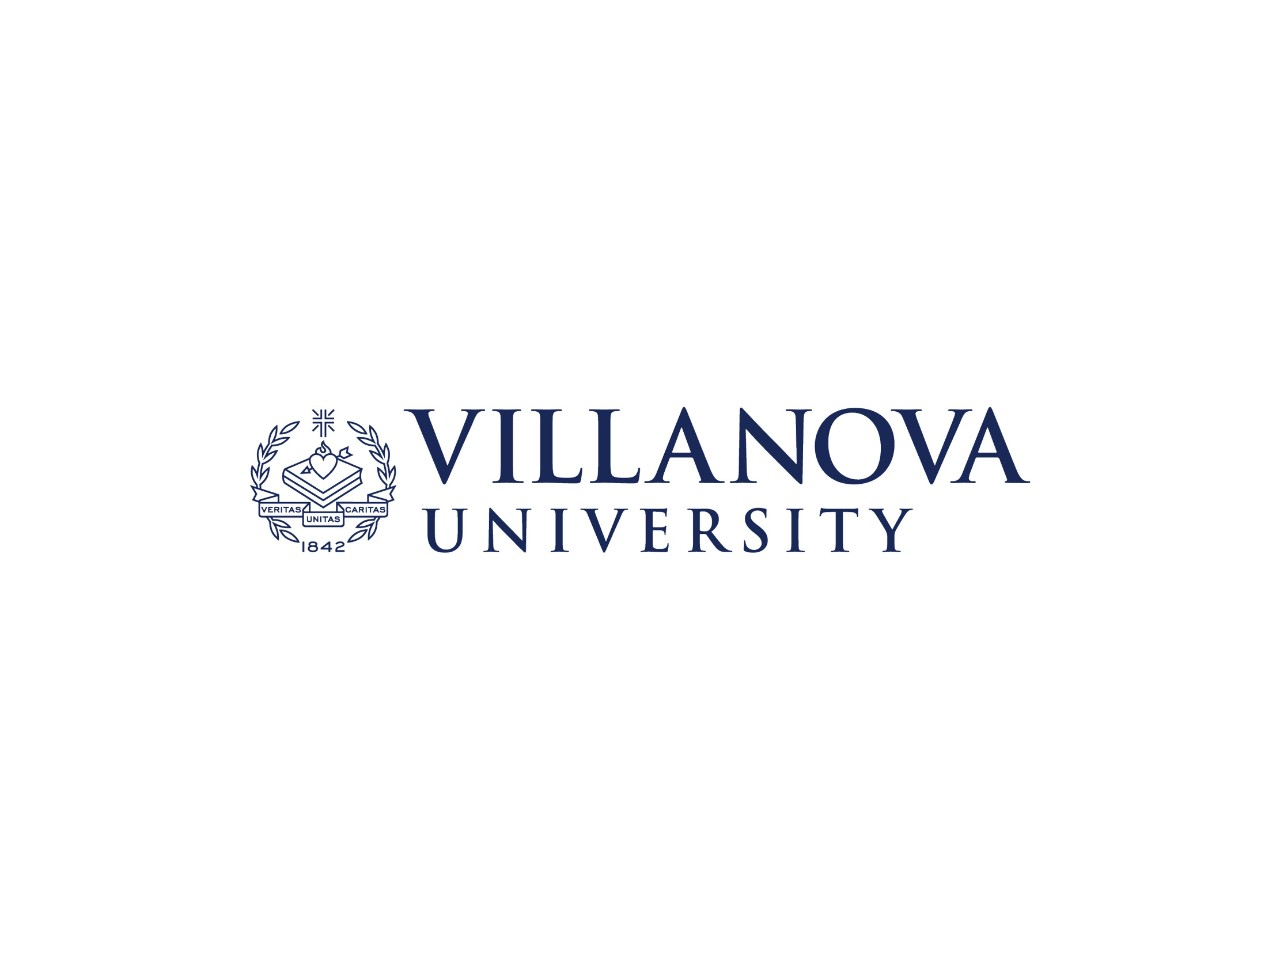 University-level Logo Guide | Villanova University